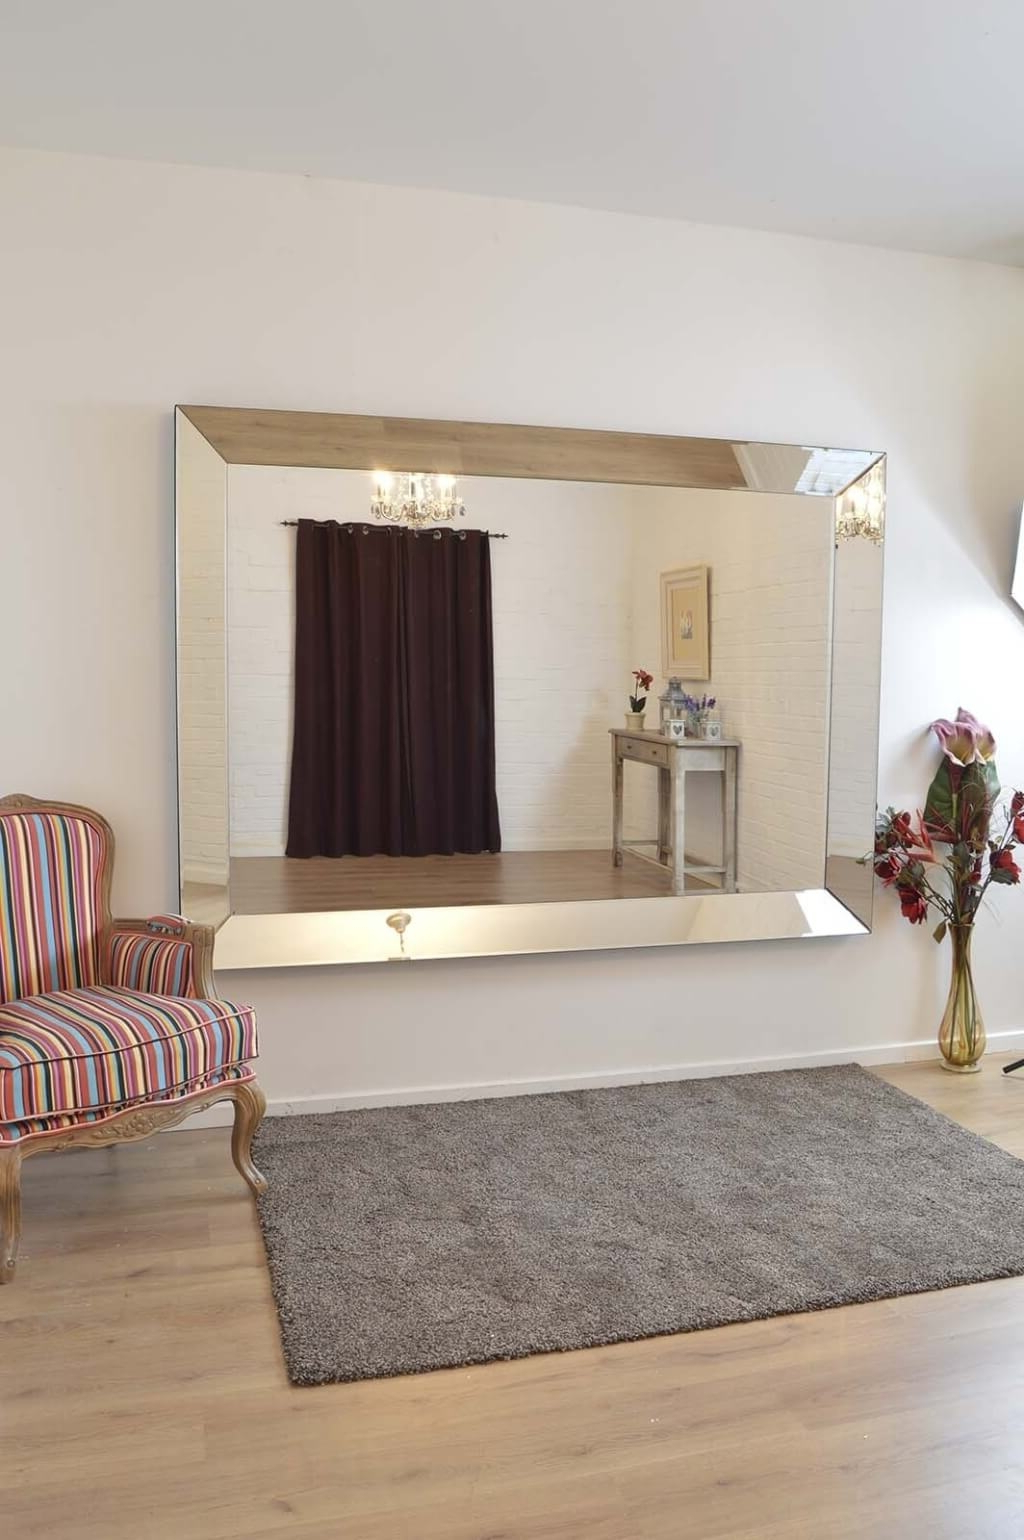 Living Full Length Frameless Wall Mirror • Bathroom Mirrors In Current Frameless Full Length Wall Mirrors (Gallery 7 of 20)